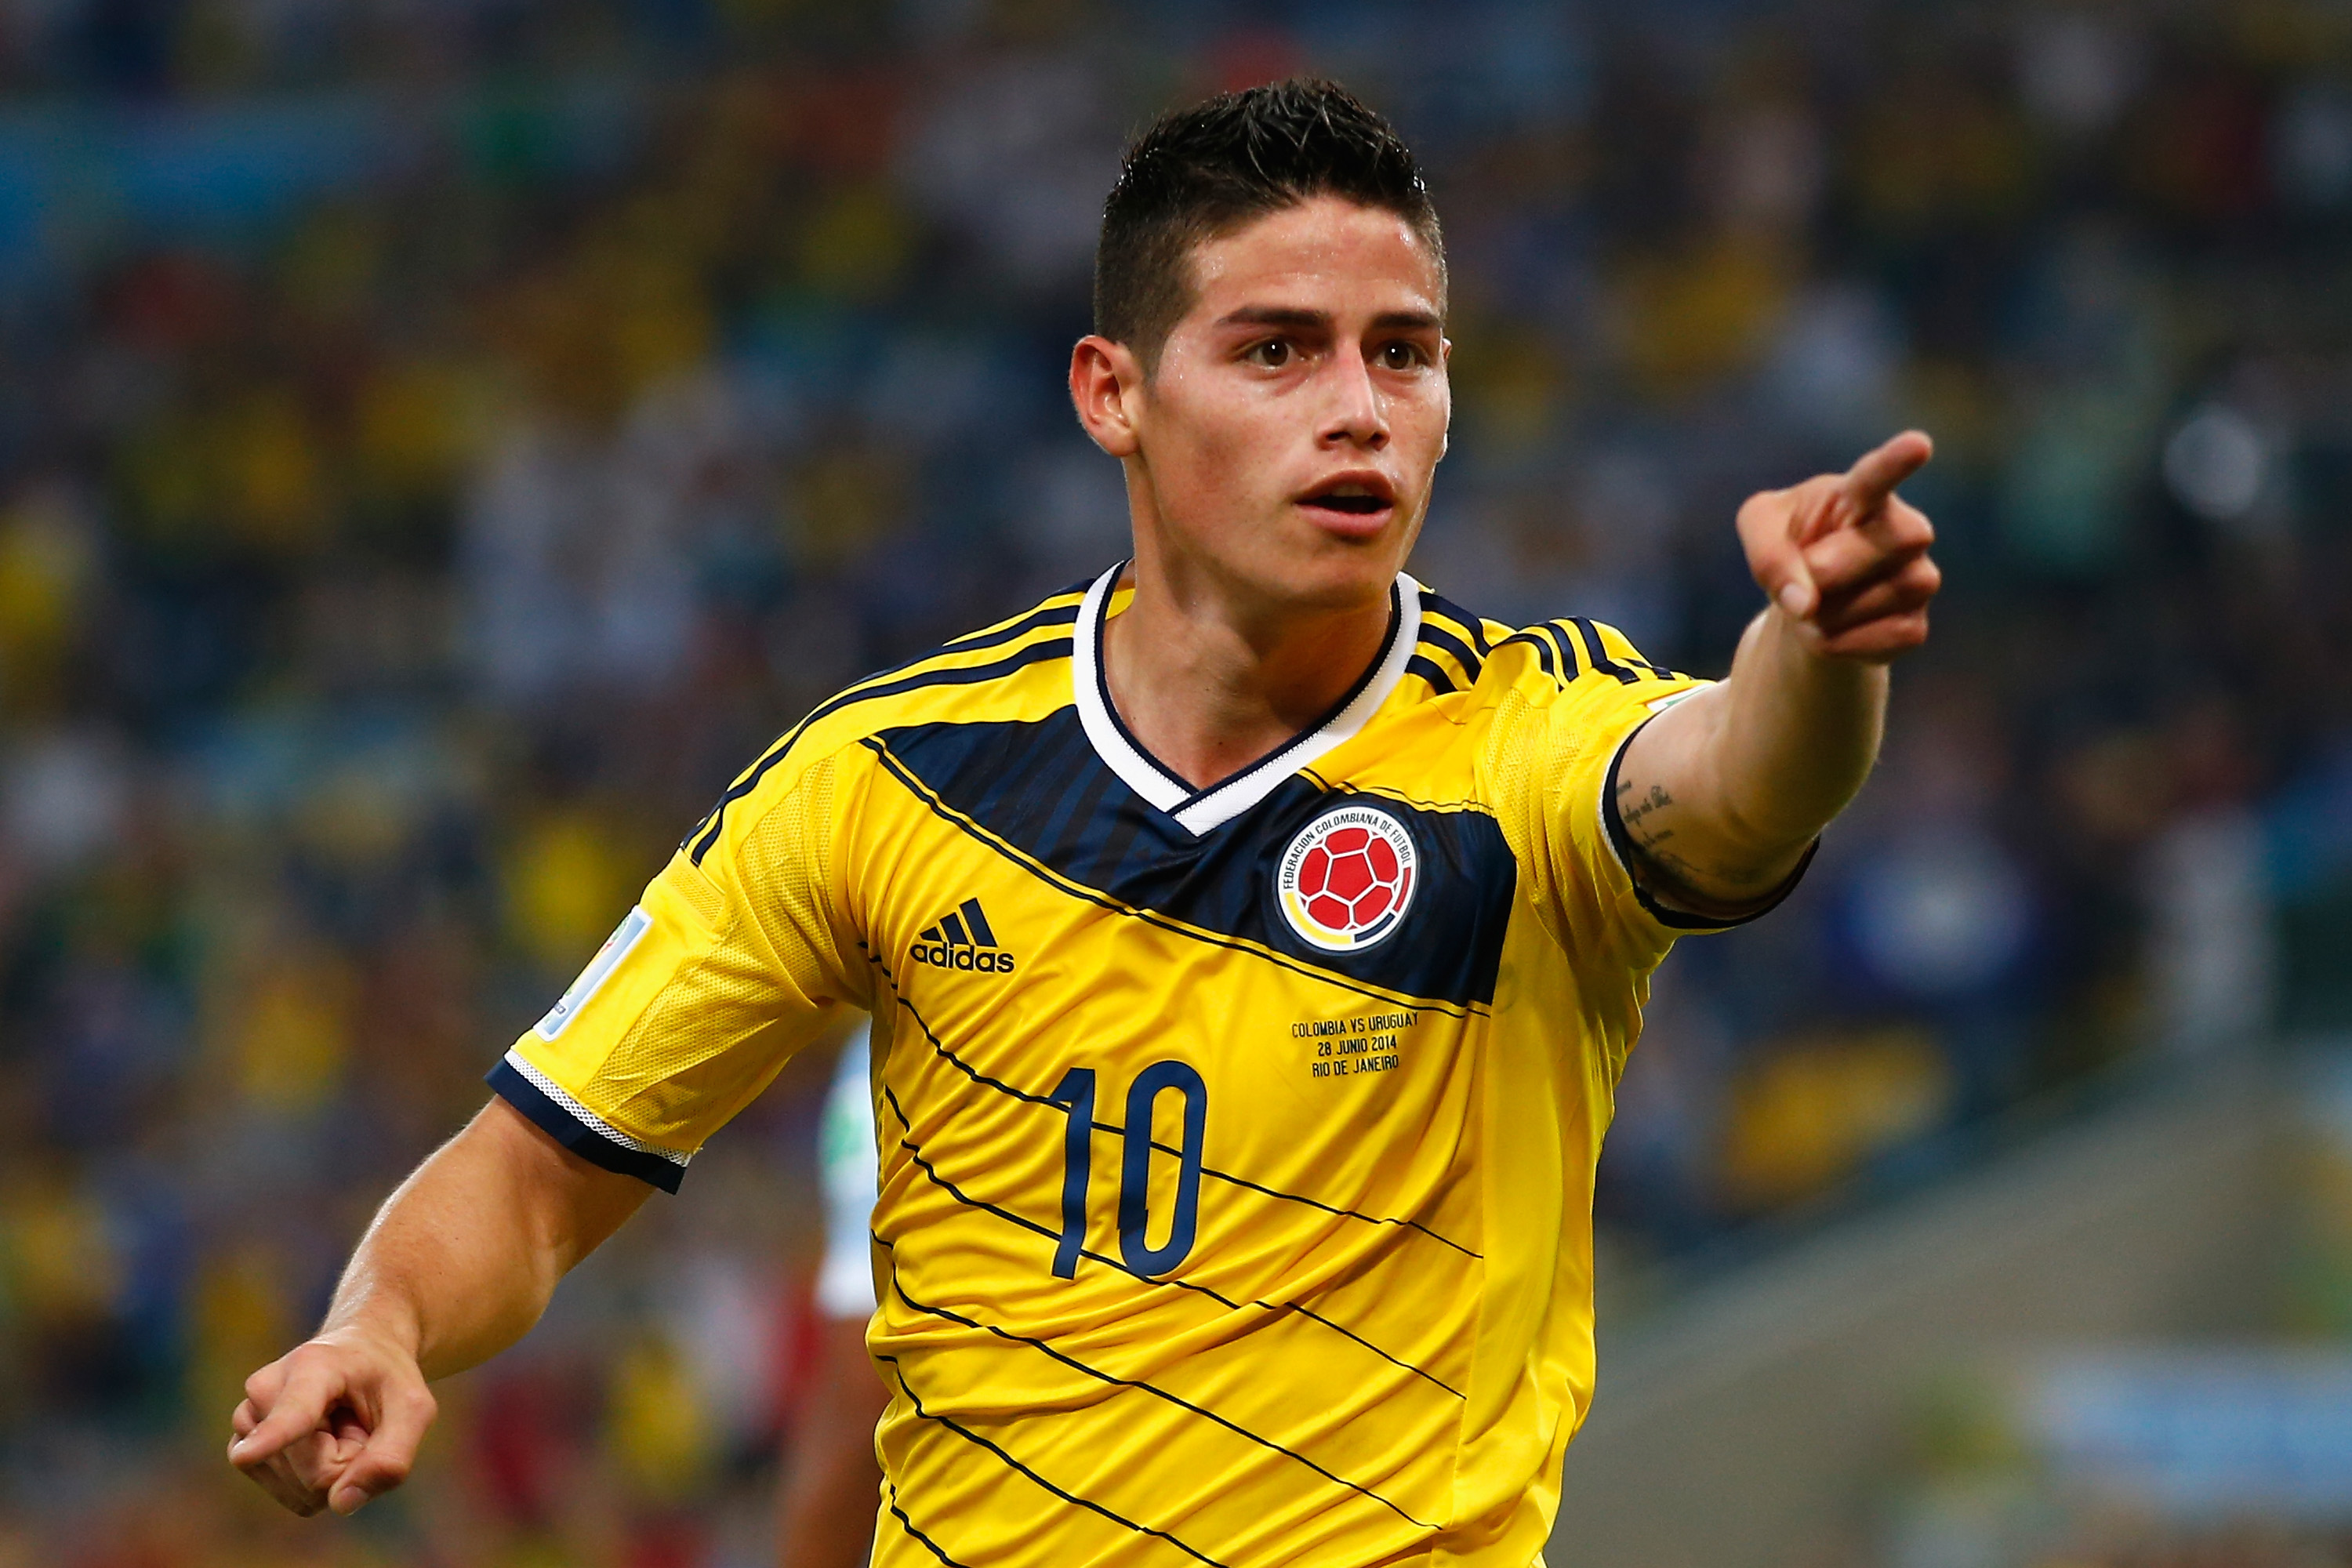 Should Manchester United sign Real Madrid's James Rodriguez in this summer's transfer window?